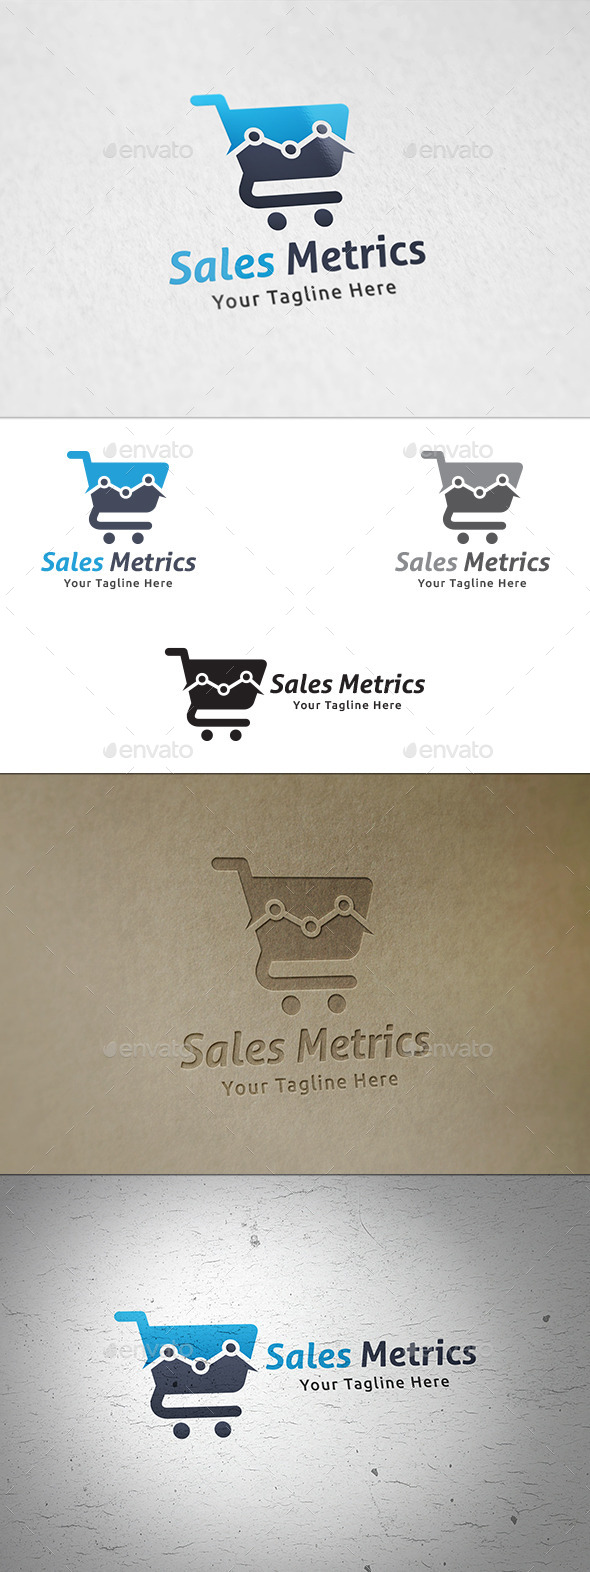 GraphicRiver Sales Metrics Logo Template 11275885